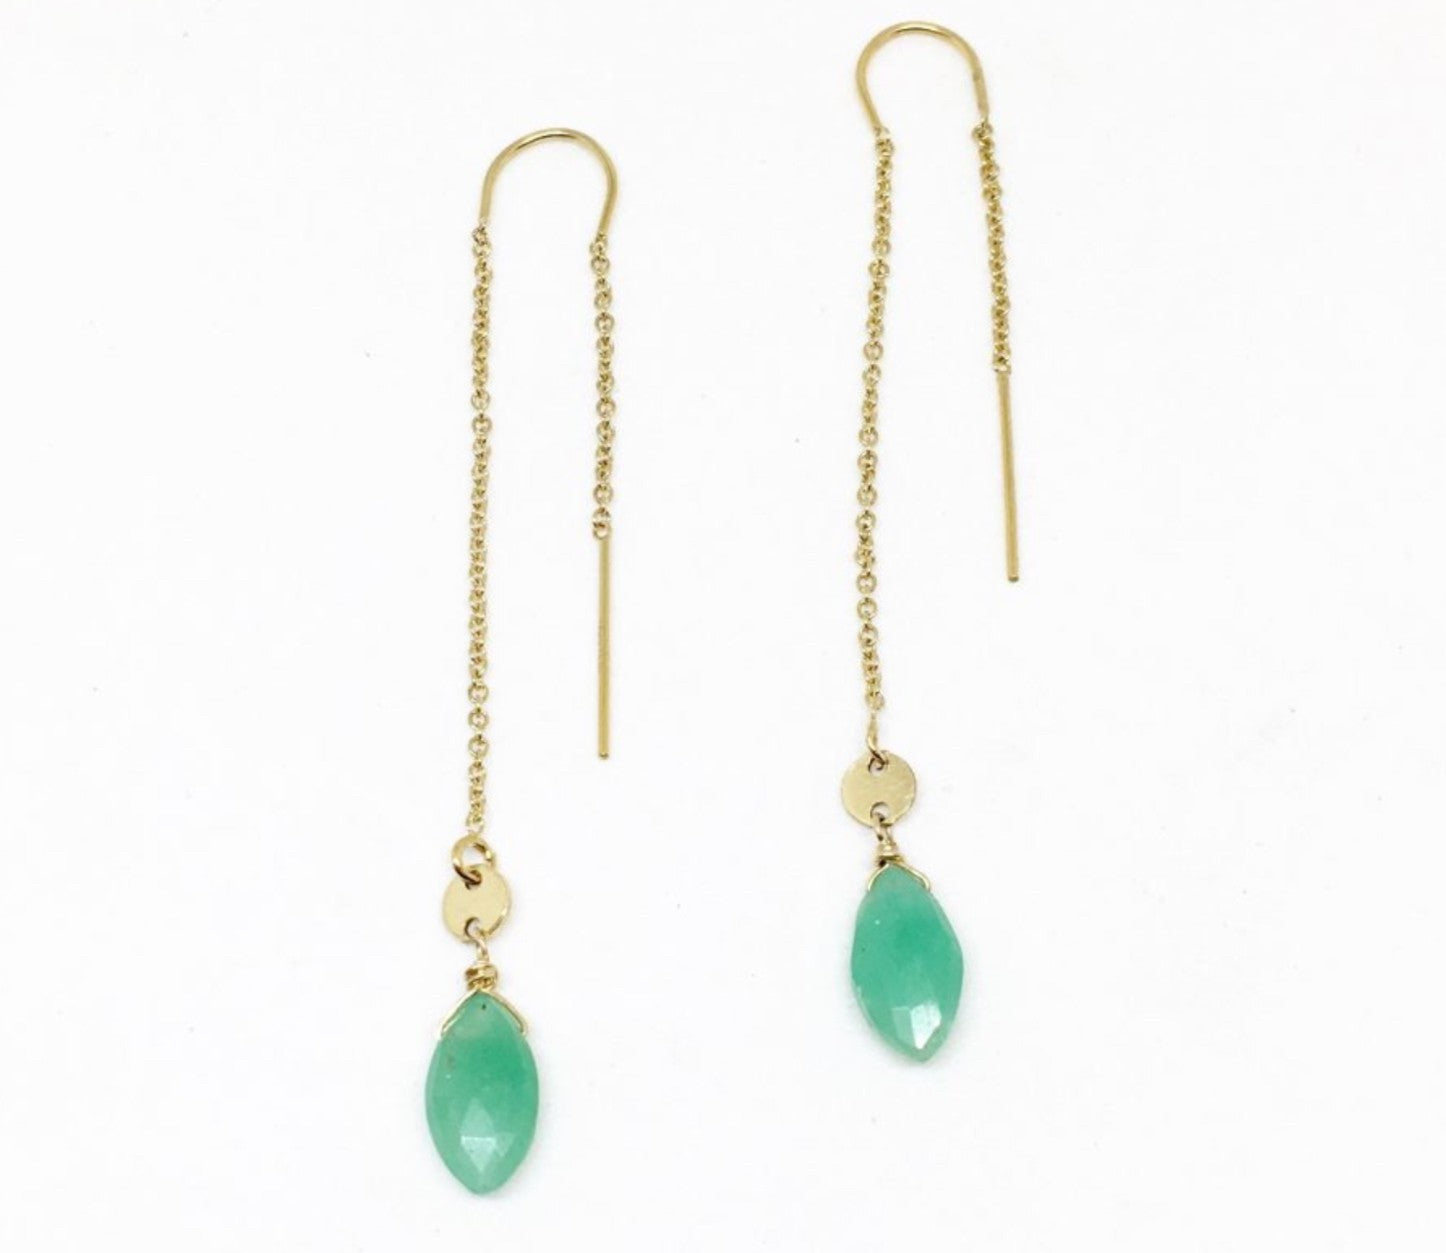 Long Raindrop Earrings